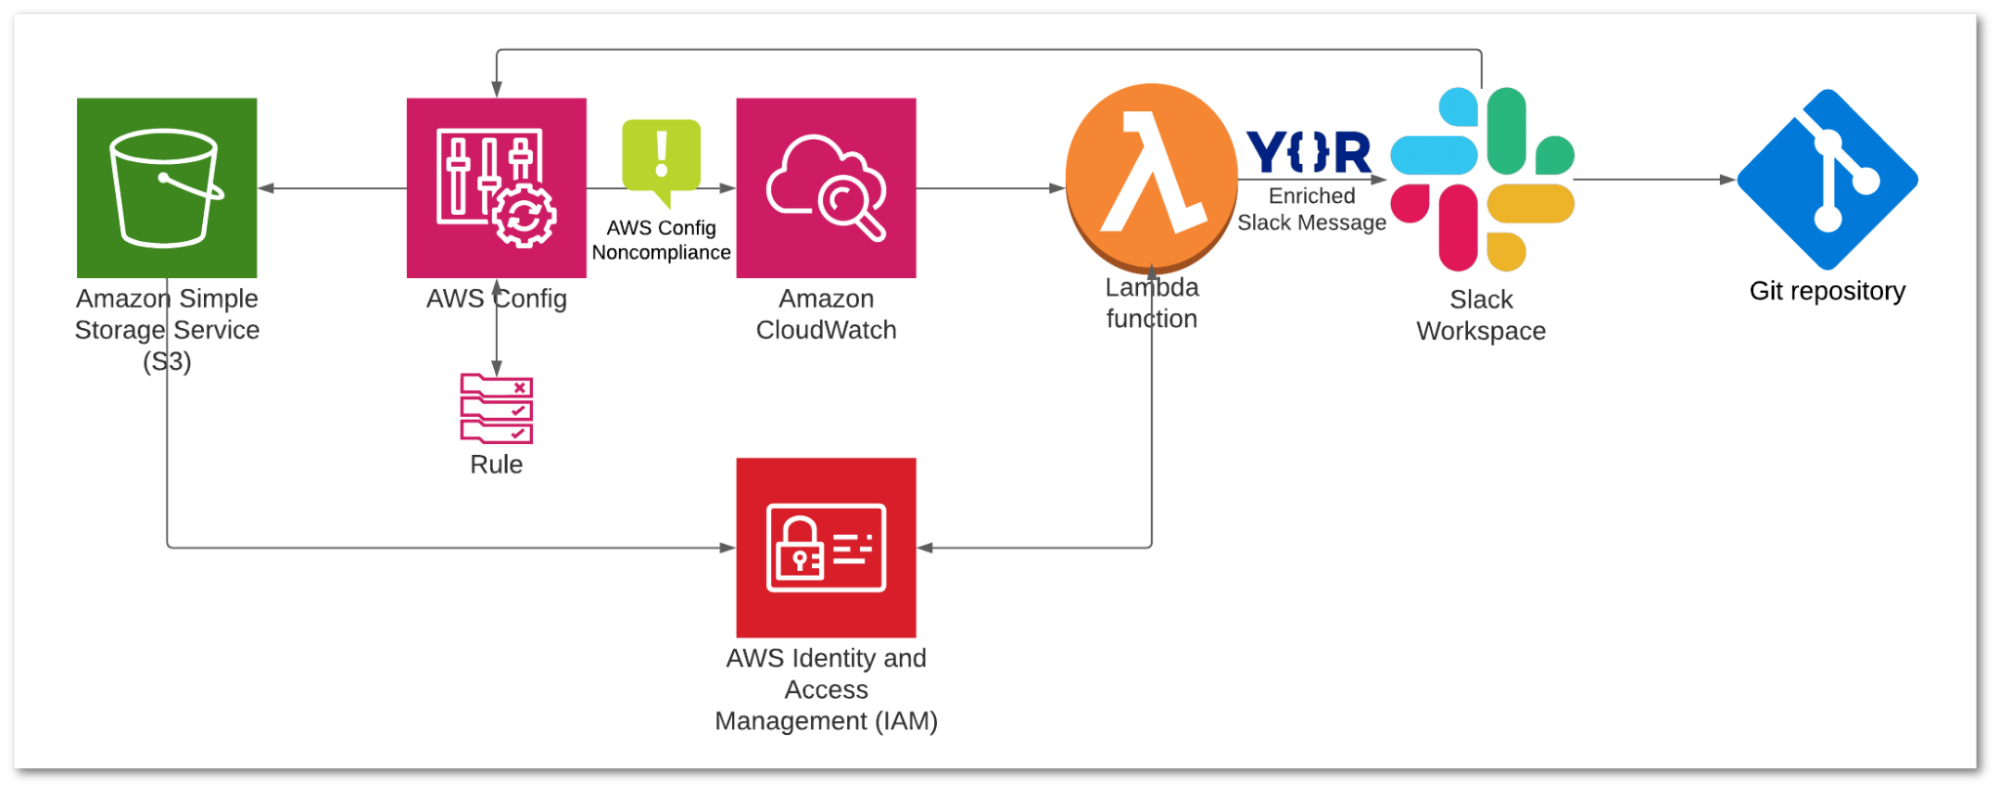 flow chart of Yor with AWS